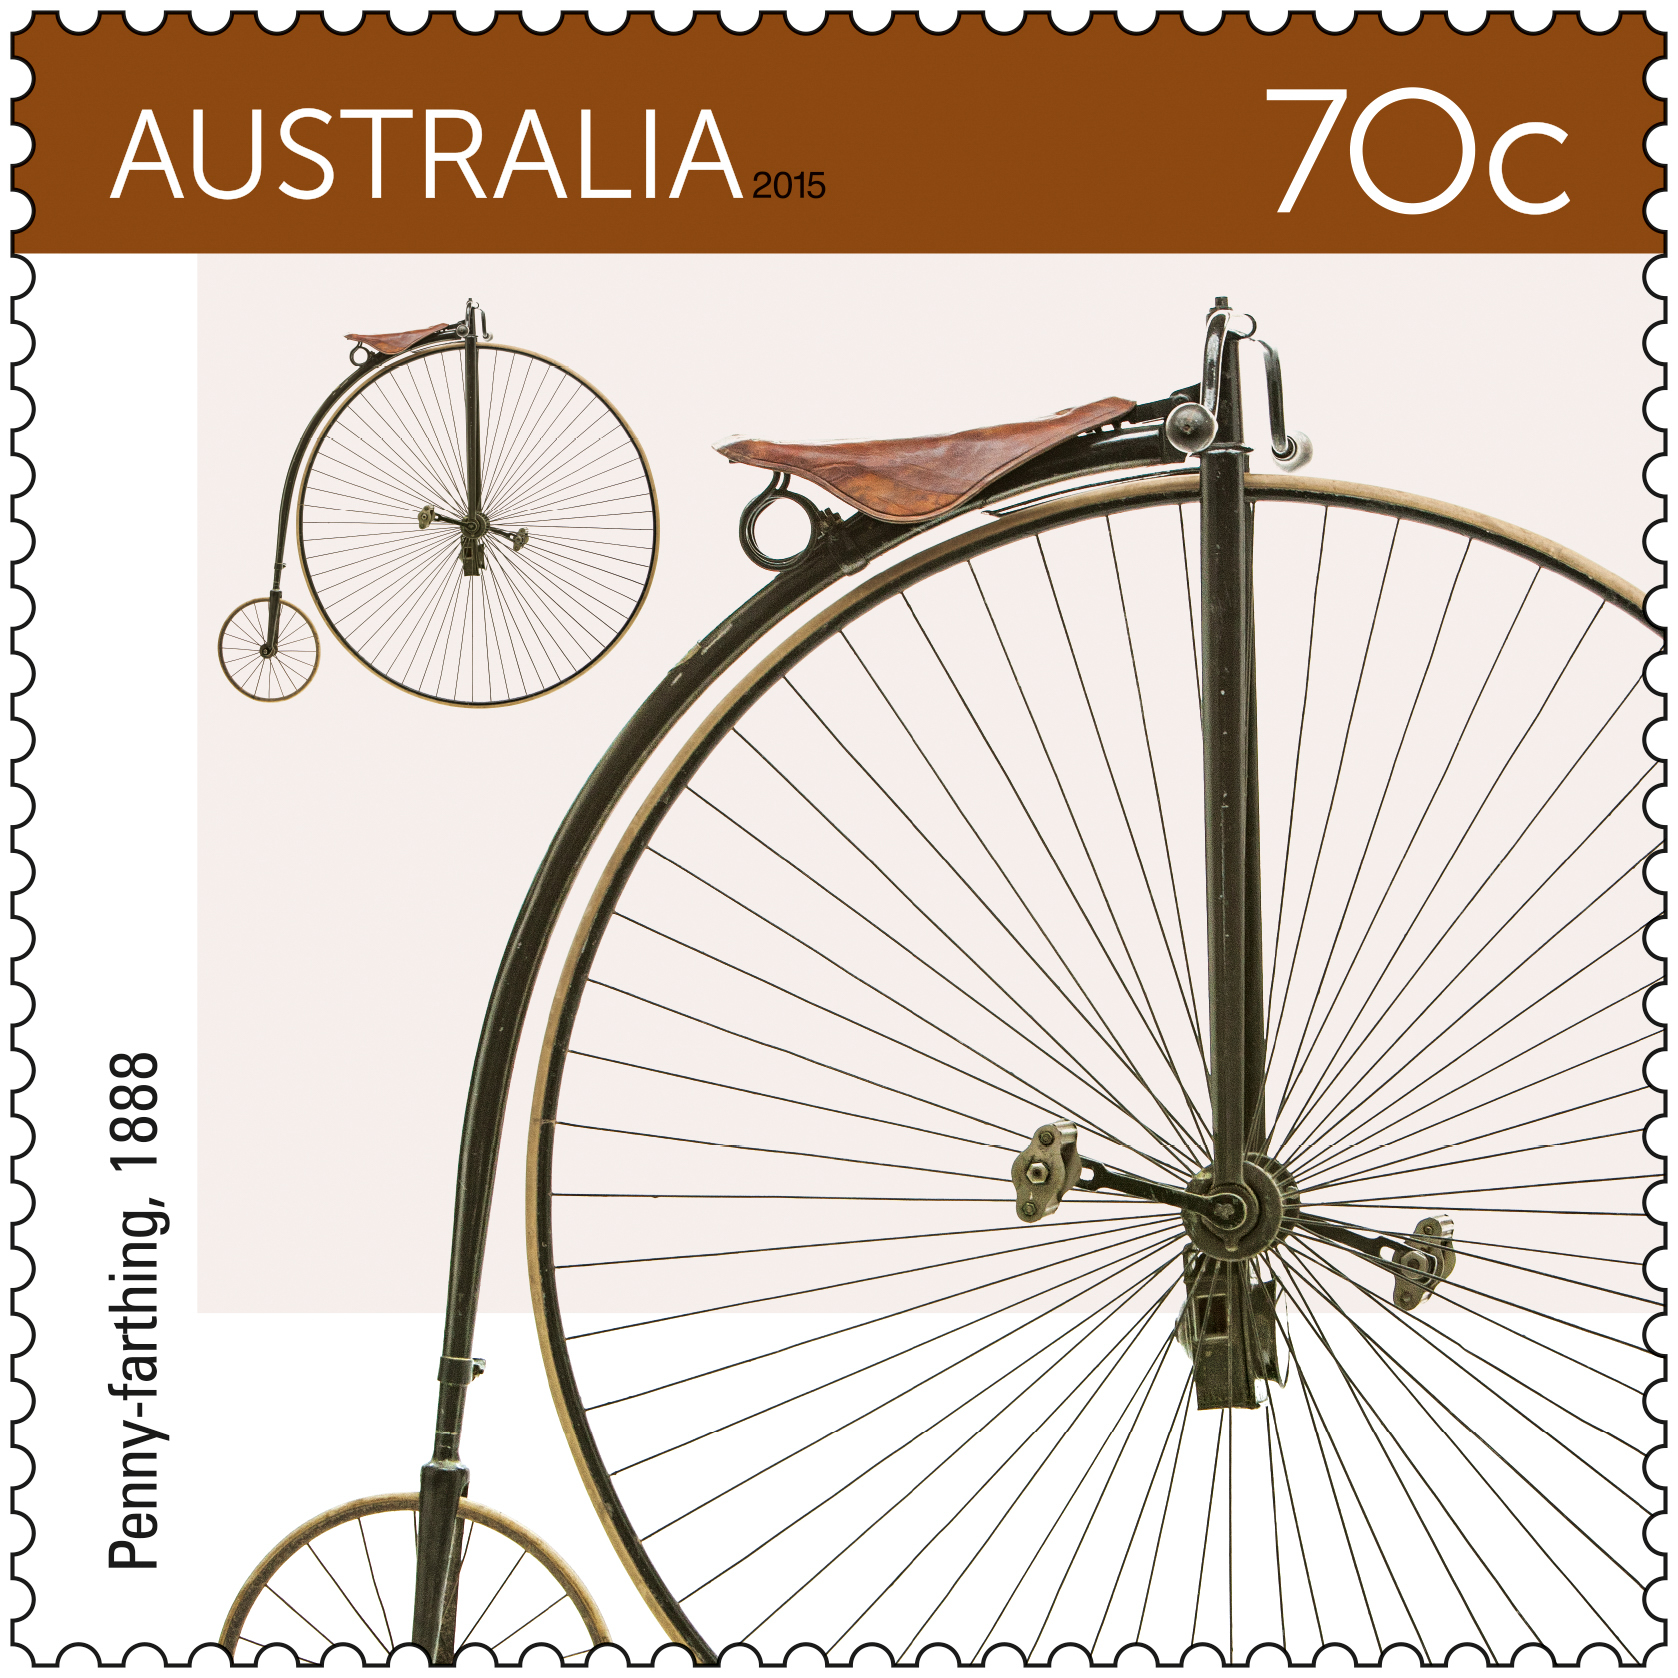 Australia Post pedals its new Bicycles stamp issue